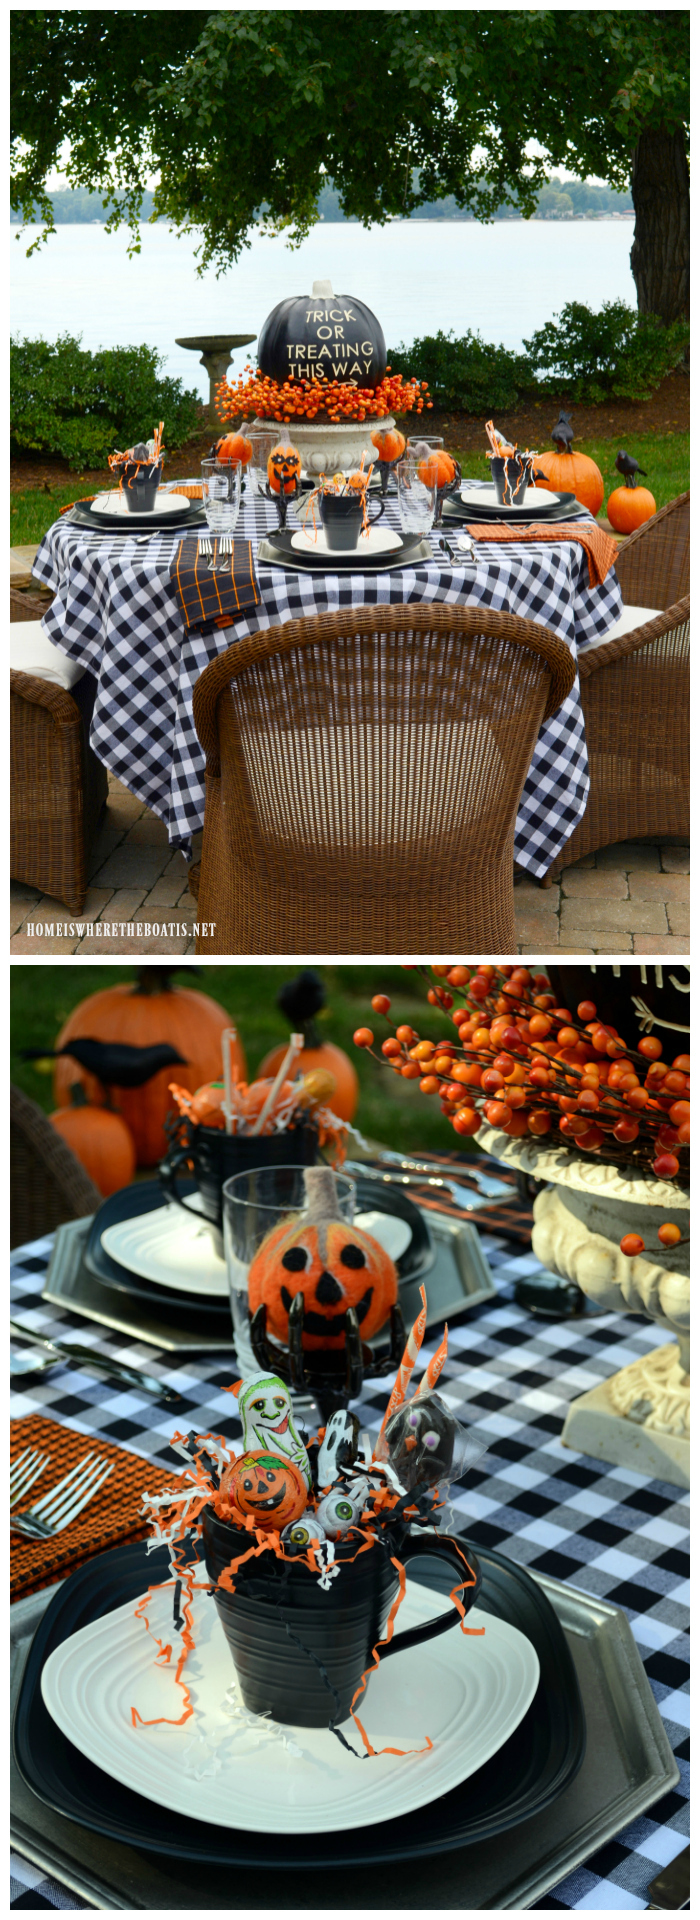 This Way to Trick or Treating Halloween Table | ©homeiswheretheboatis.net #alfresco #Halloween #tablescape